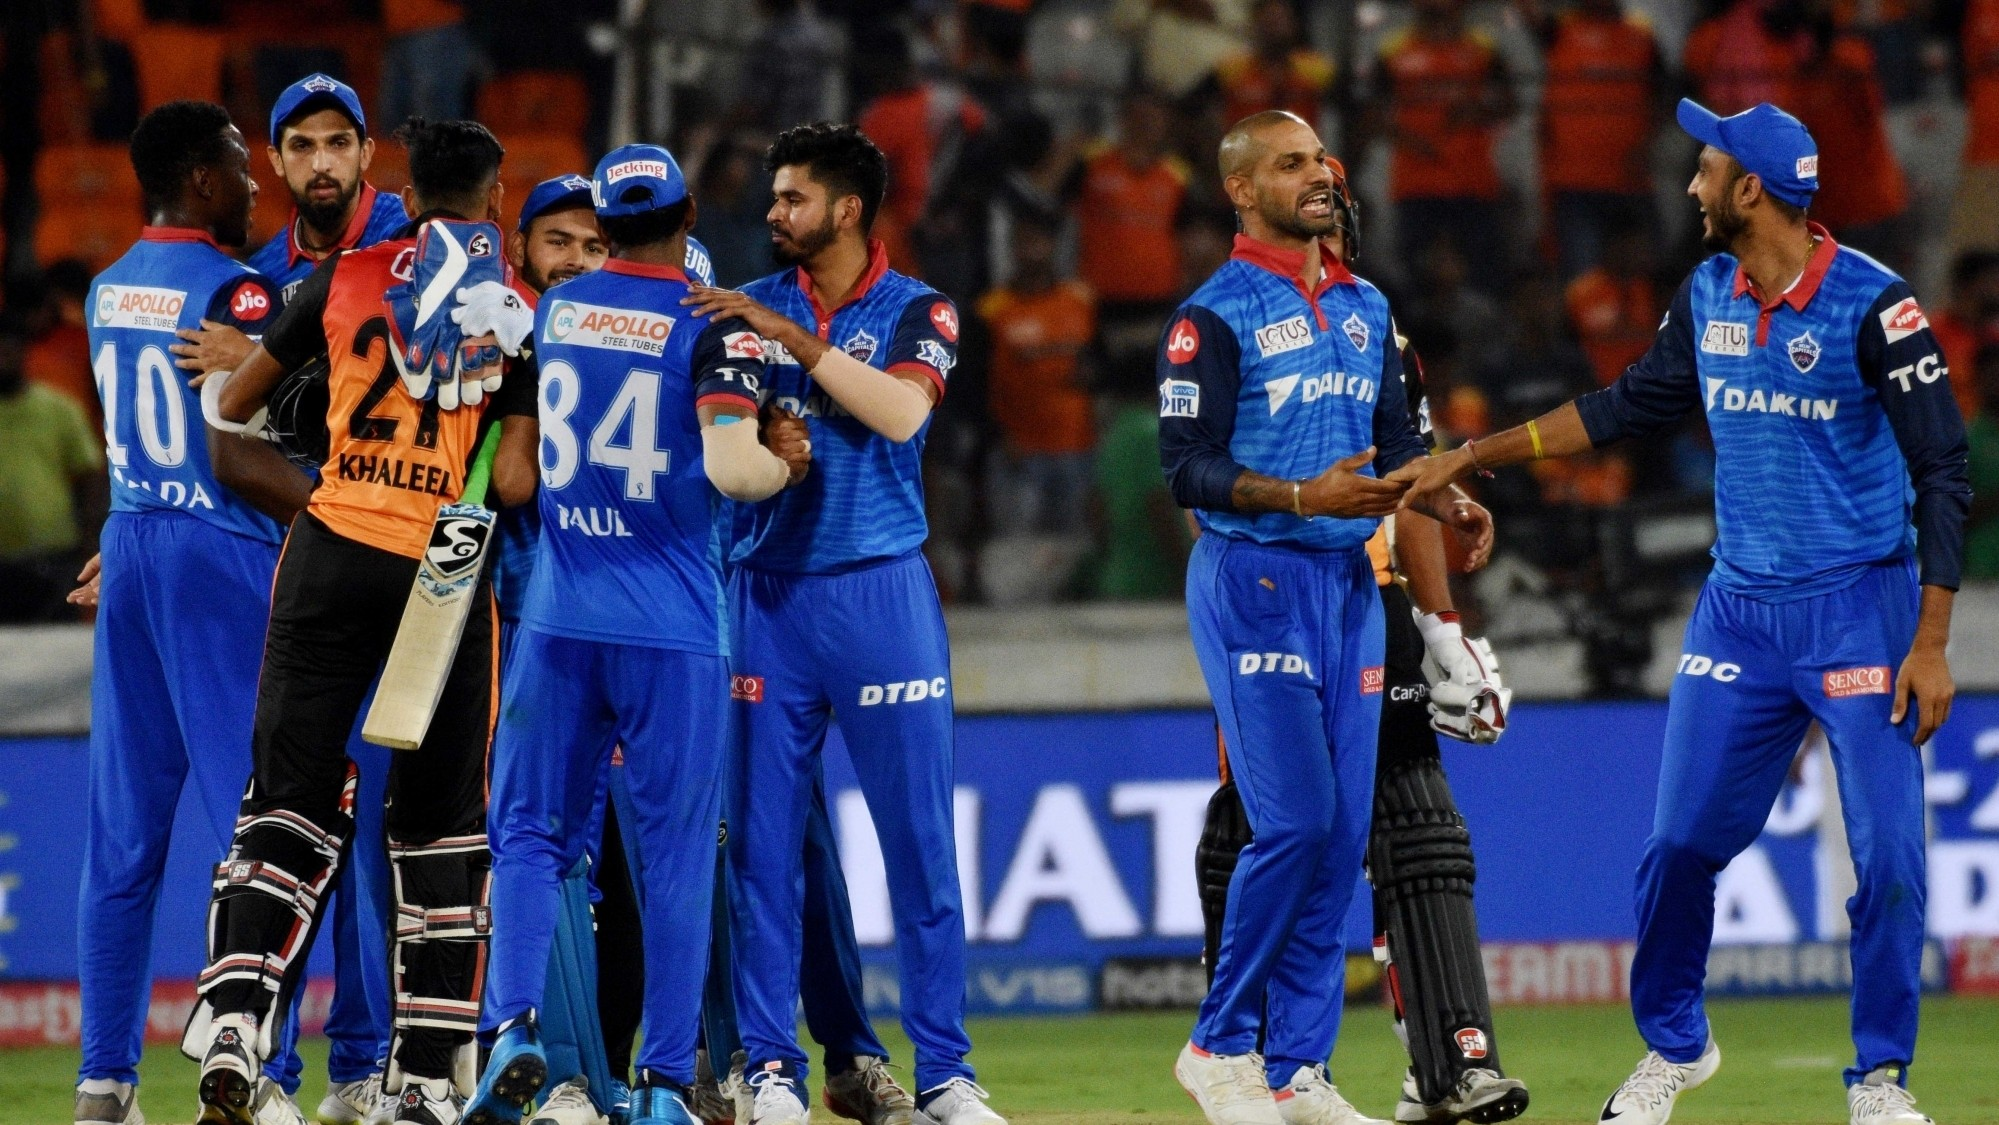 IPL 2019: Shreyas Iyer believes Delhi Capitals can win the title this year